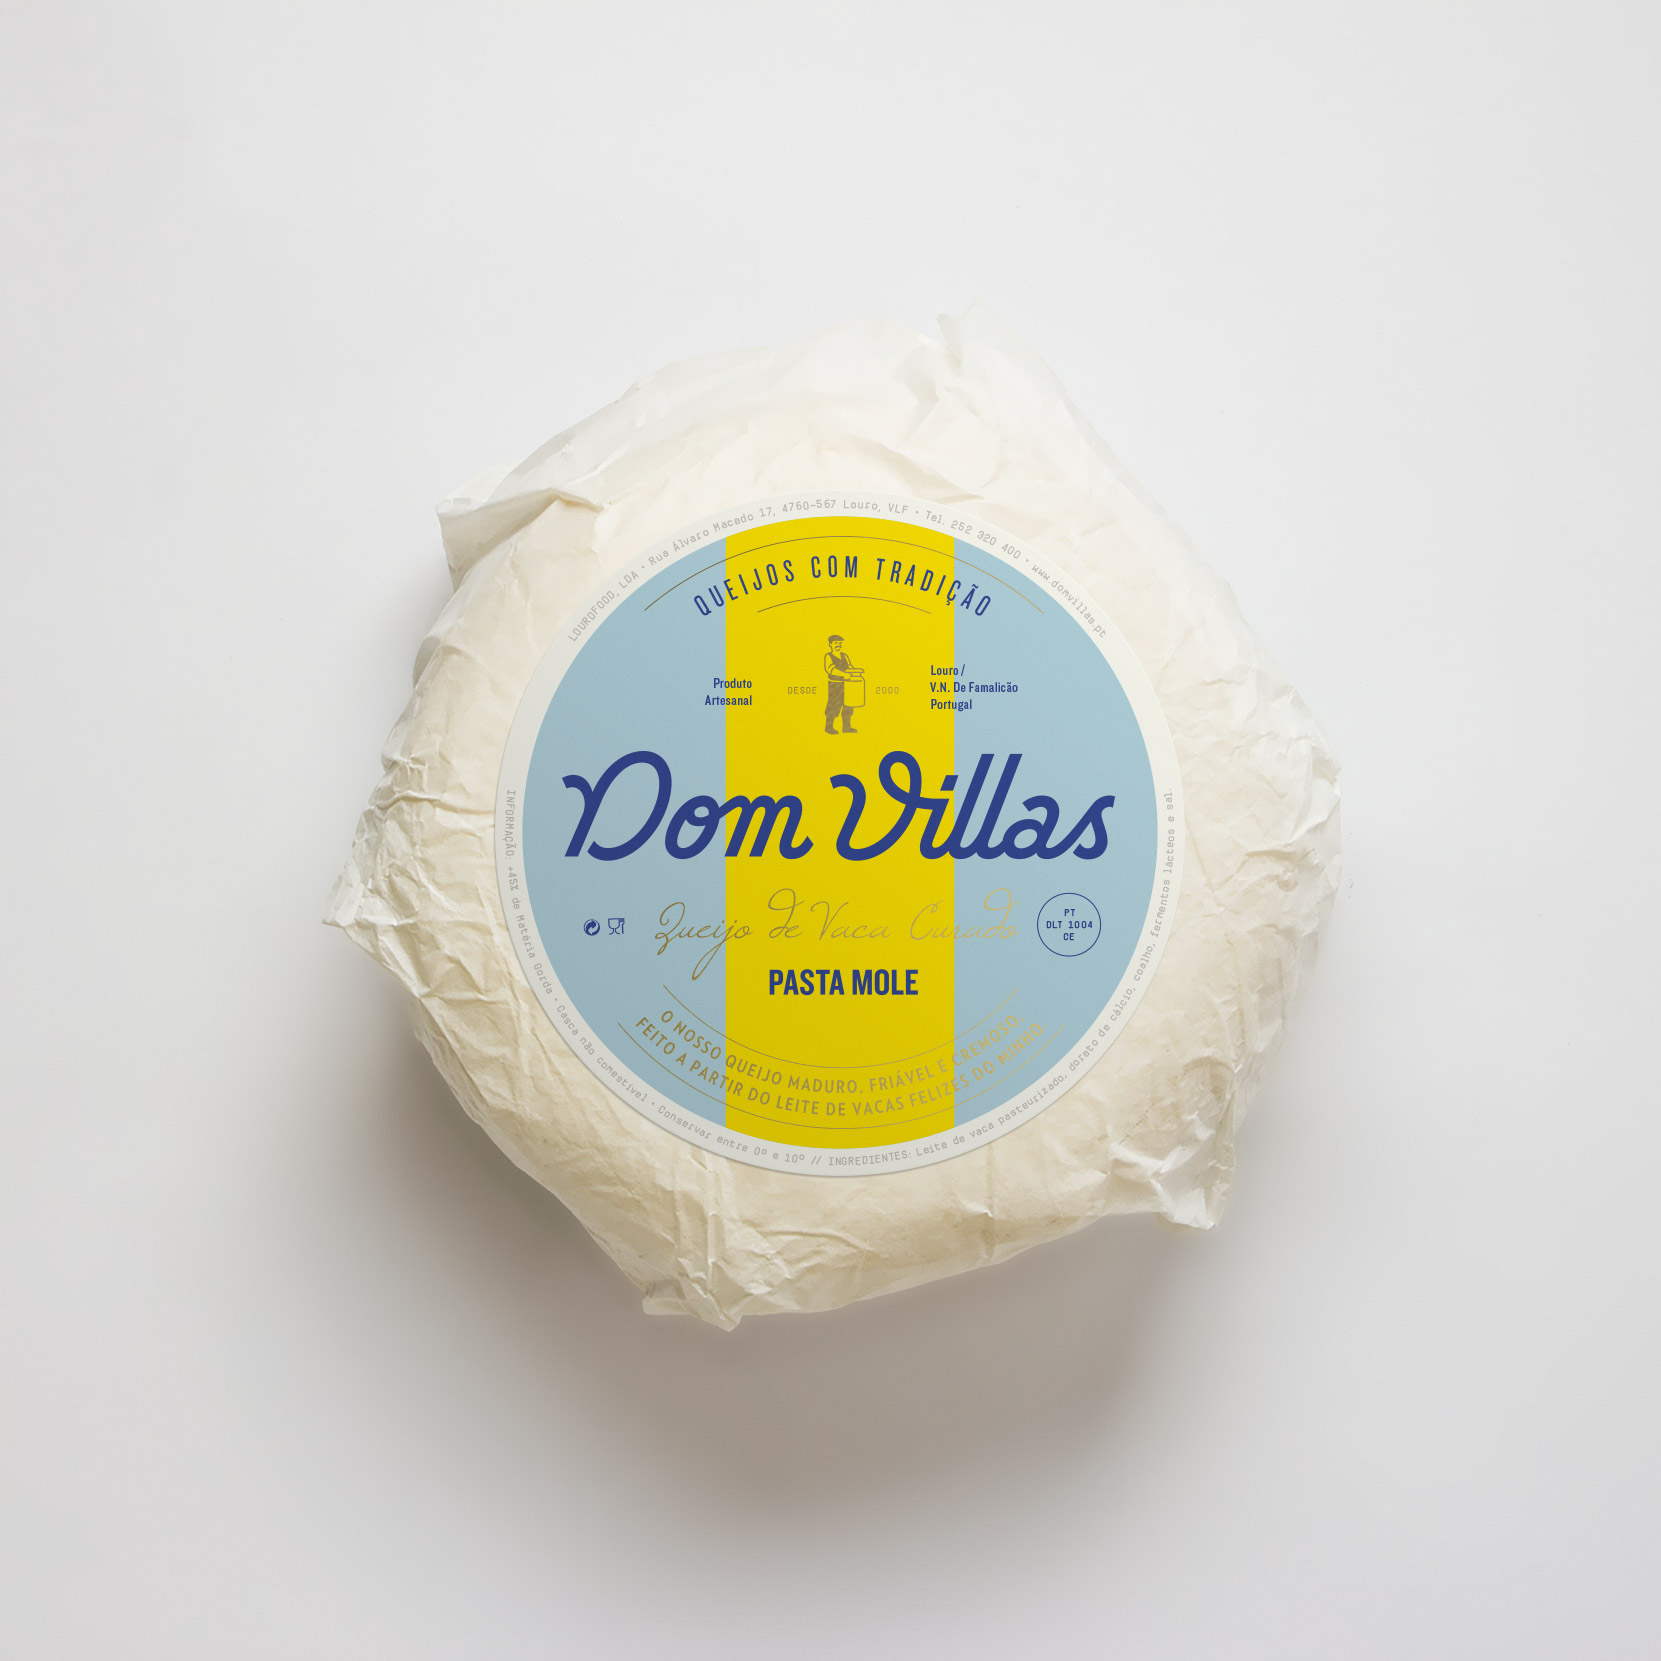 Cheeses+Dom+Villas+identity+and+packaging+by+www.gen-3.jpg